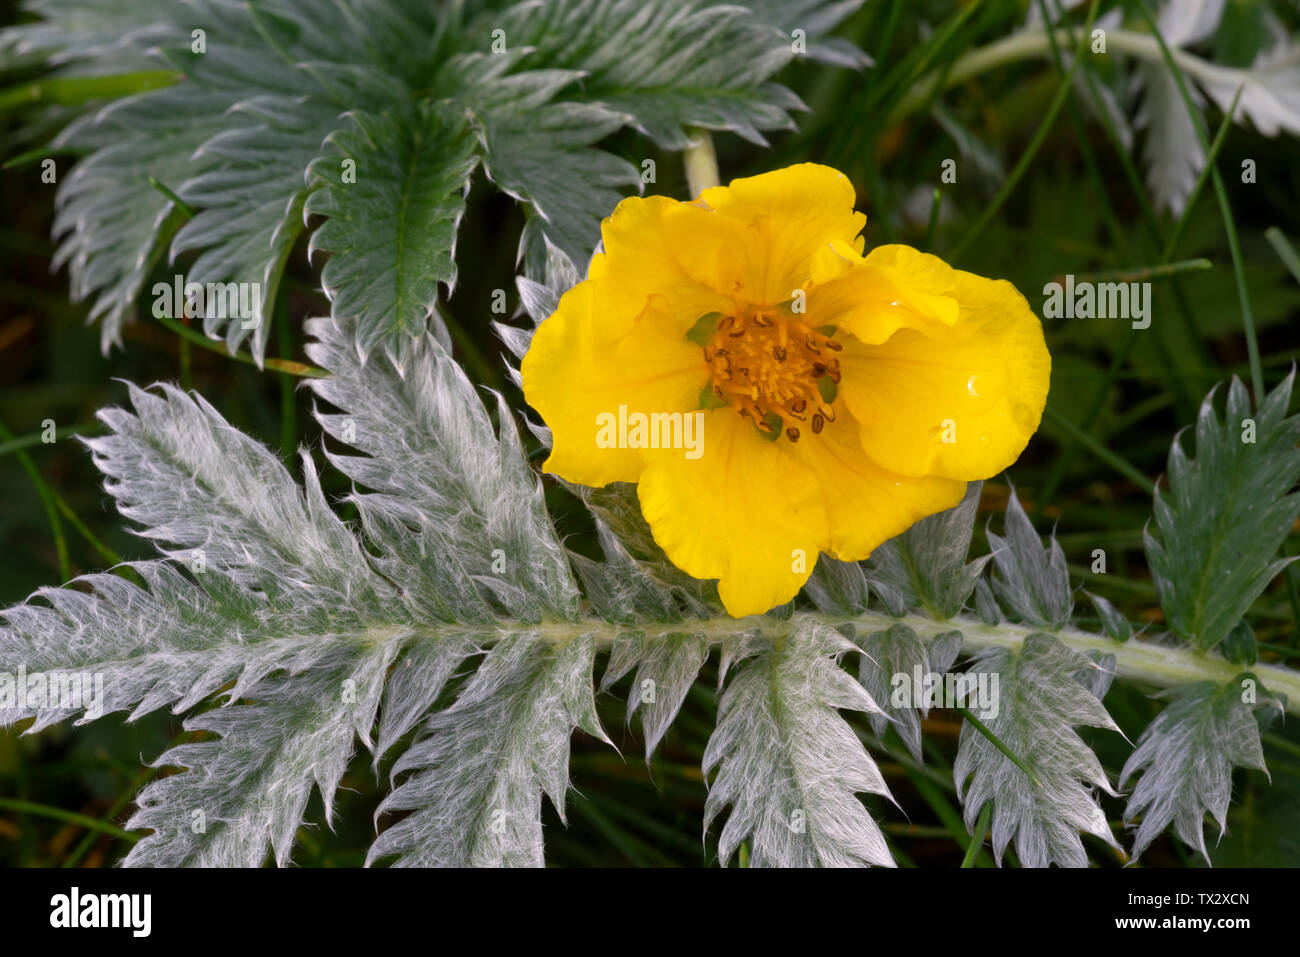 Silverweed (Potentilla anserina), flower and leaf - Stock Image